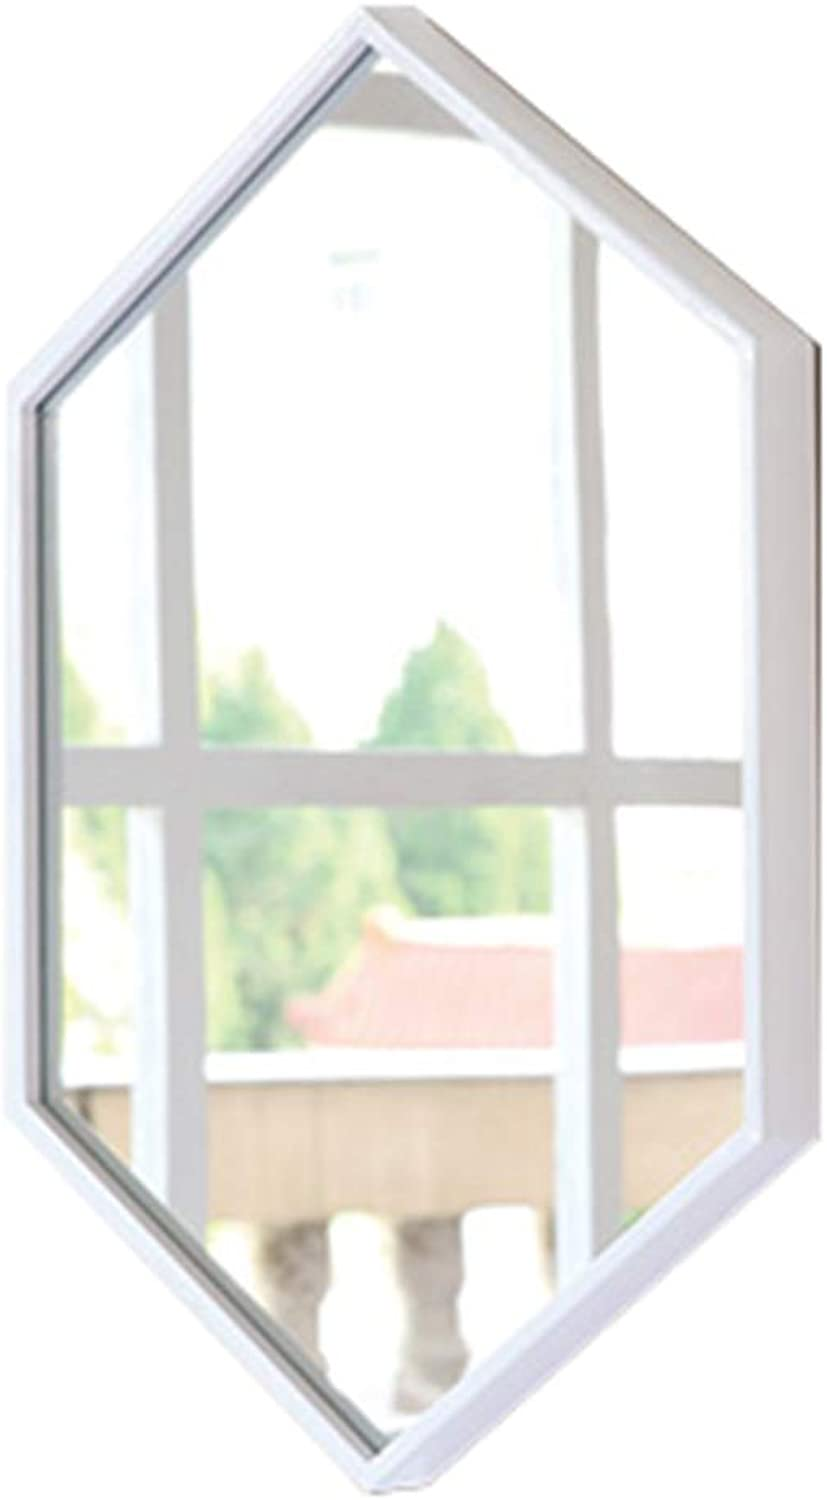 Teng Peng Bathroom Mirror-Wrought Iron Frame Mirror Decorative Wall Mirror for Bedroom Bathroom Hotel Thickness 3 Sizes Home Mirror (color   White, Size   50x70cm)